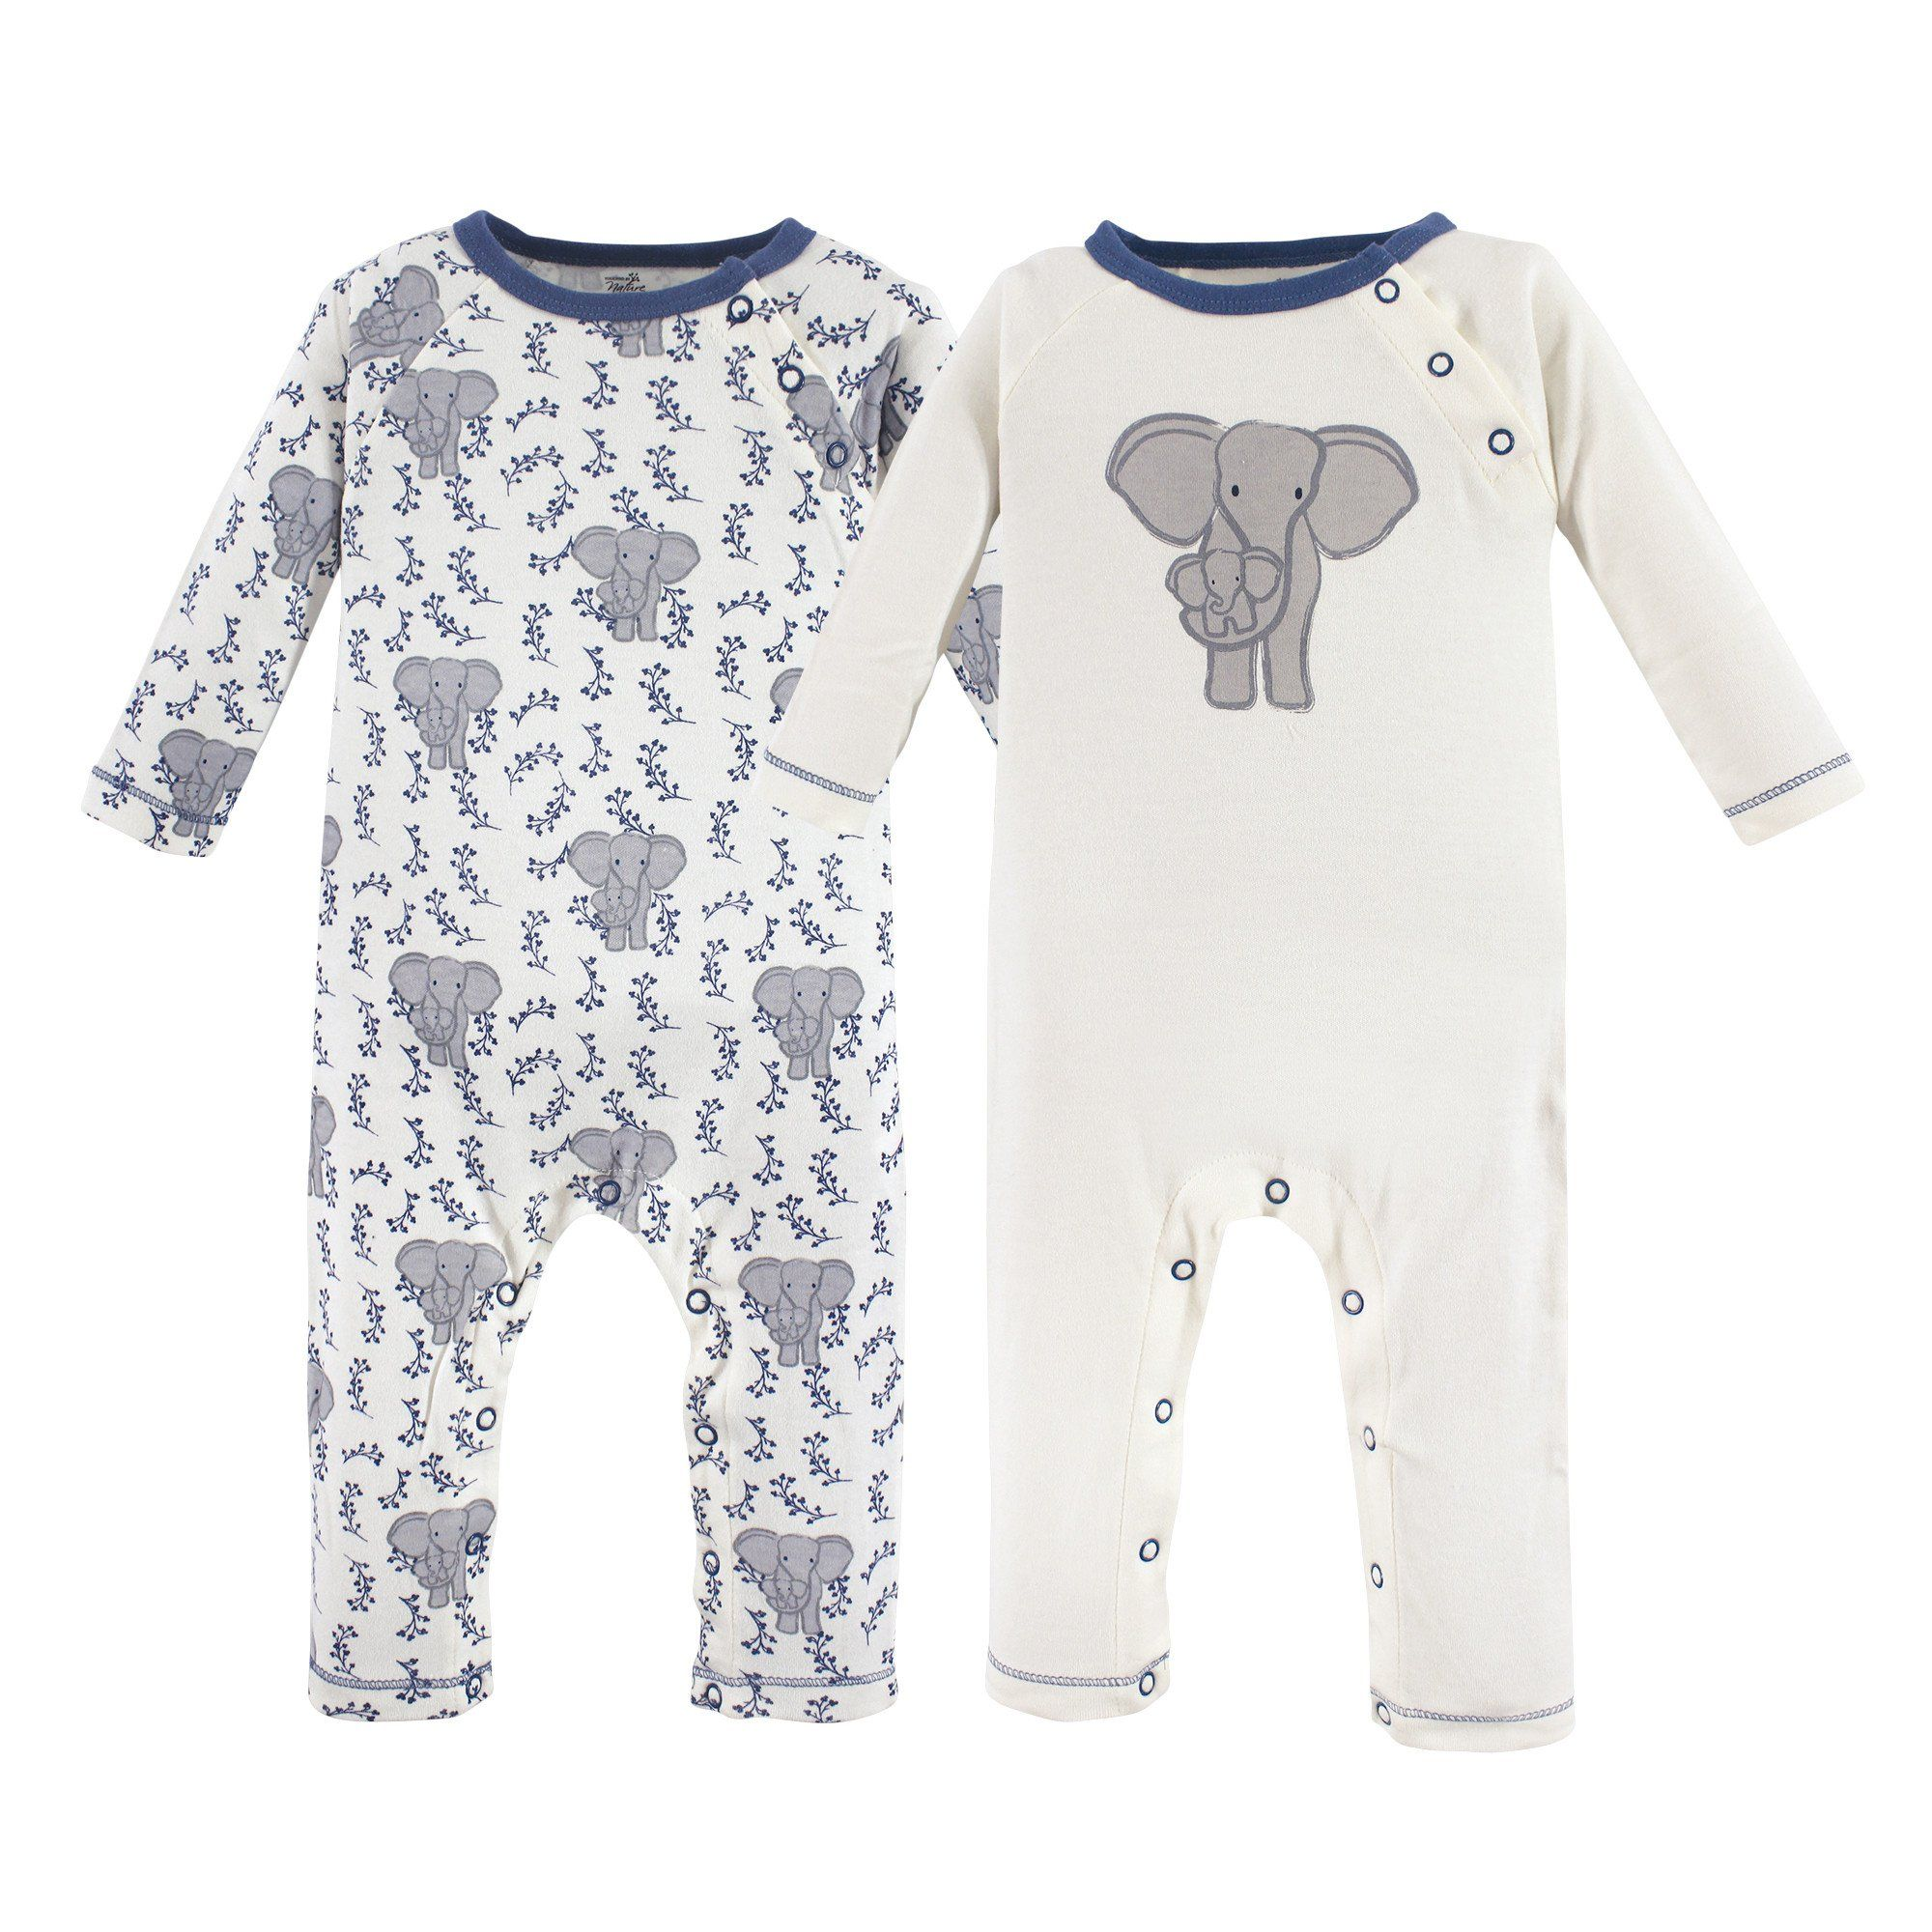 Touched by Nature Baby Organic Cotton Coveralls and Union Suits